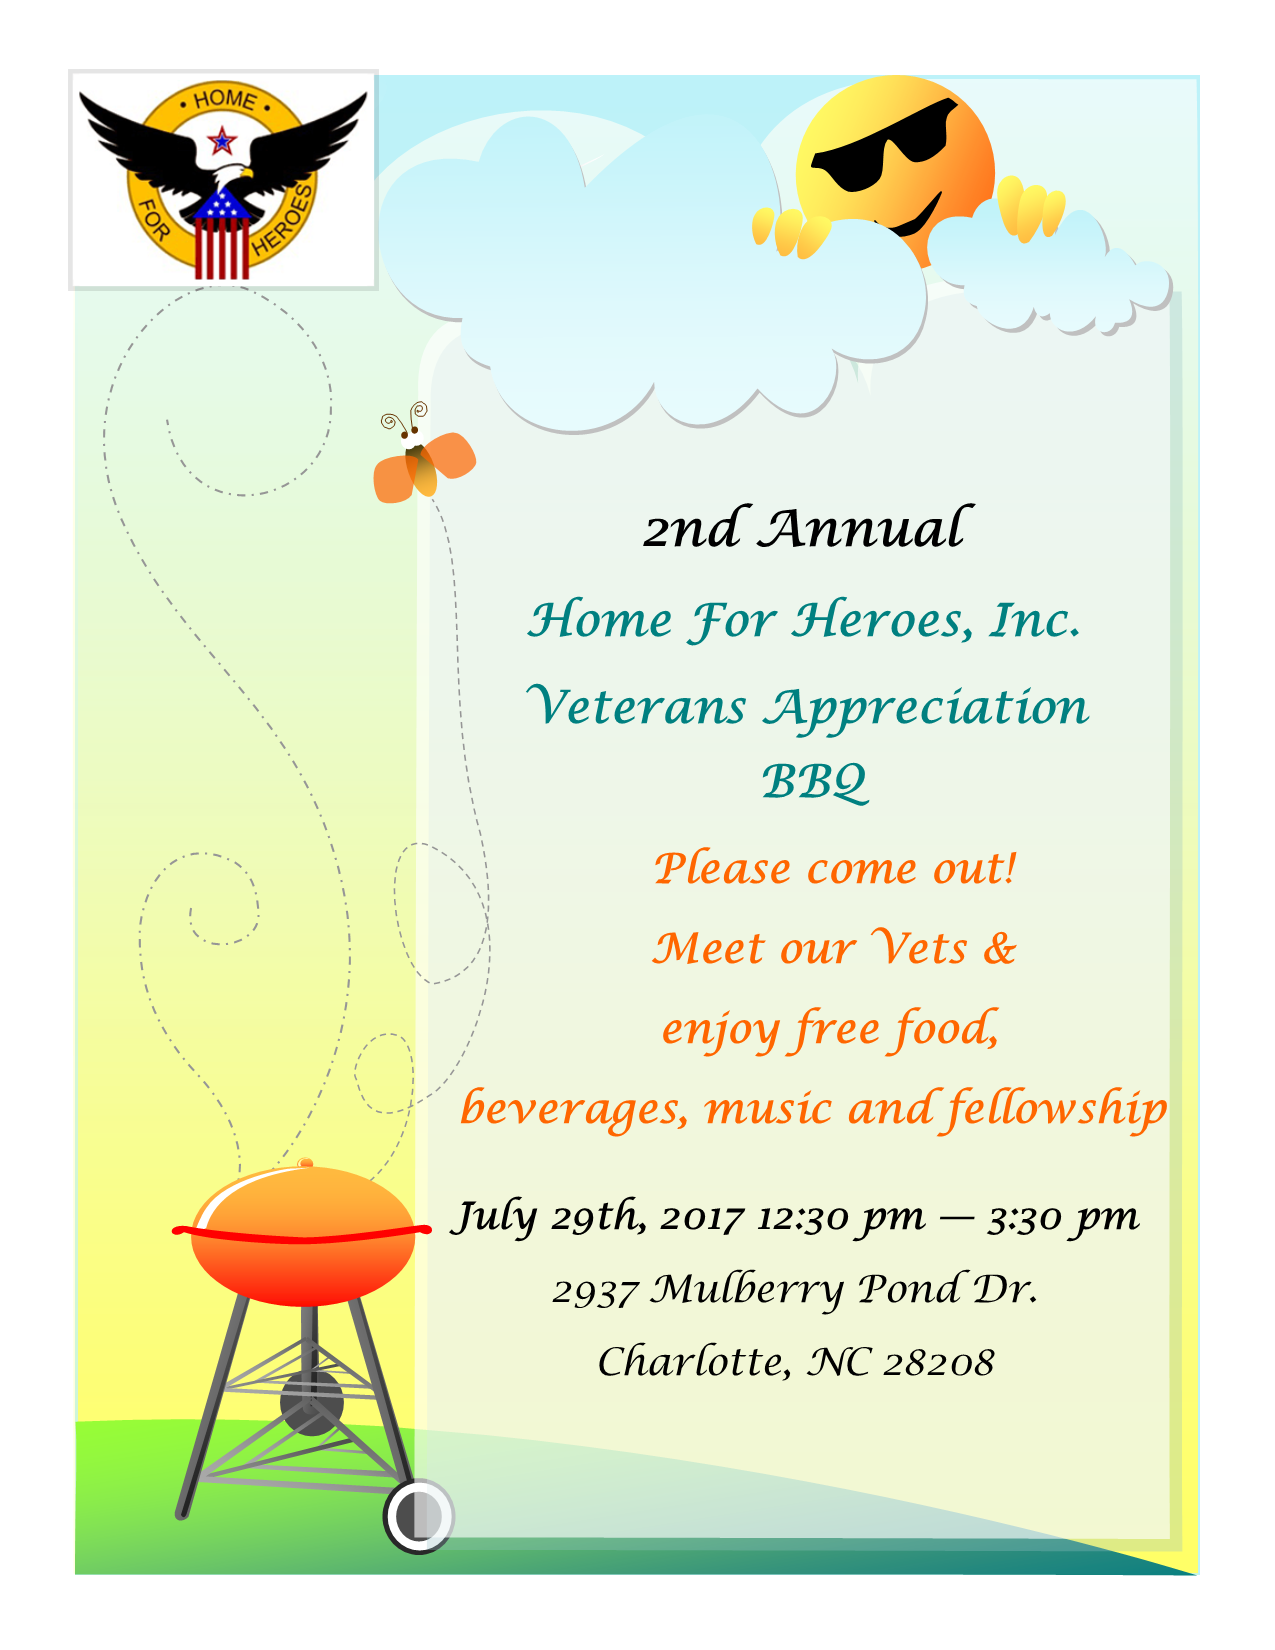 Home For Heroes, Inc. Event Flyer